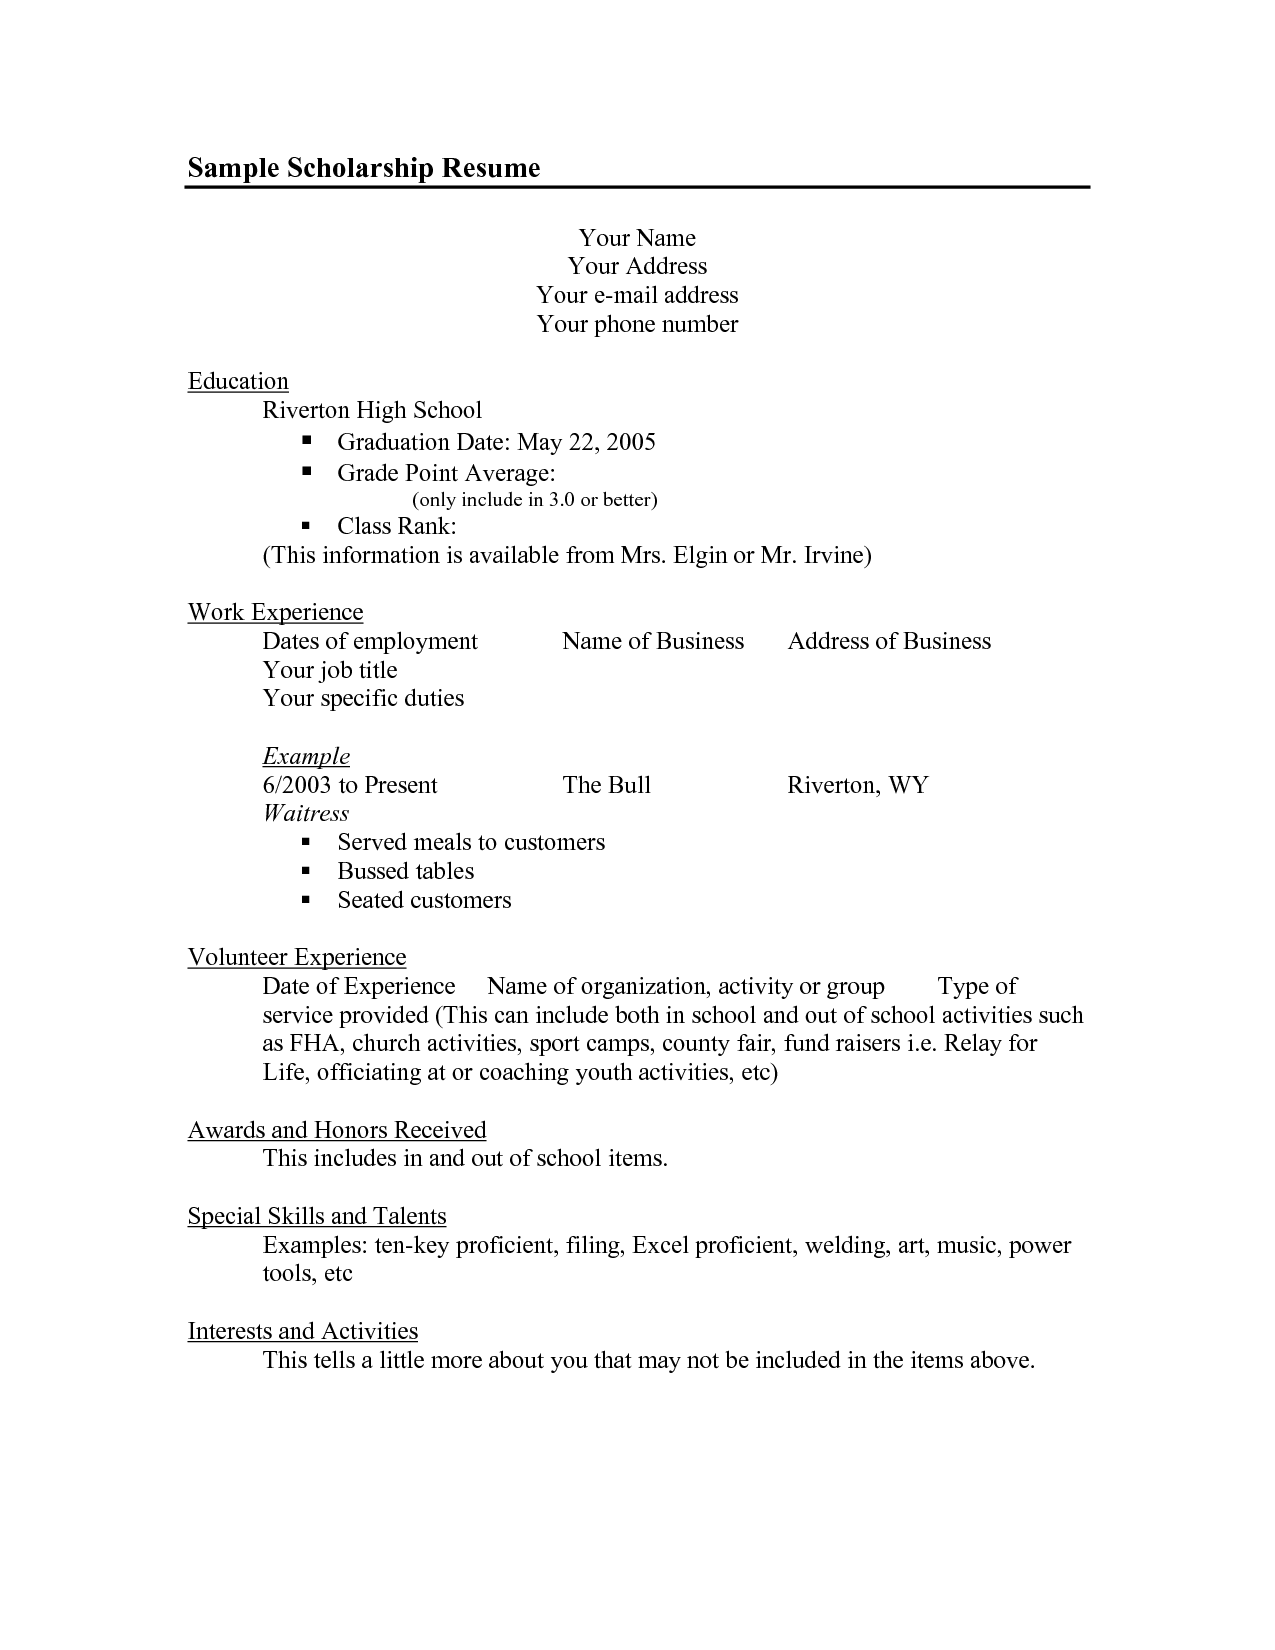 Teen Resume Template Scholarship Resume Templates  Sample Scholarship Resume